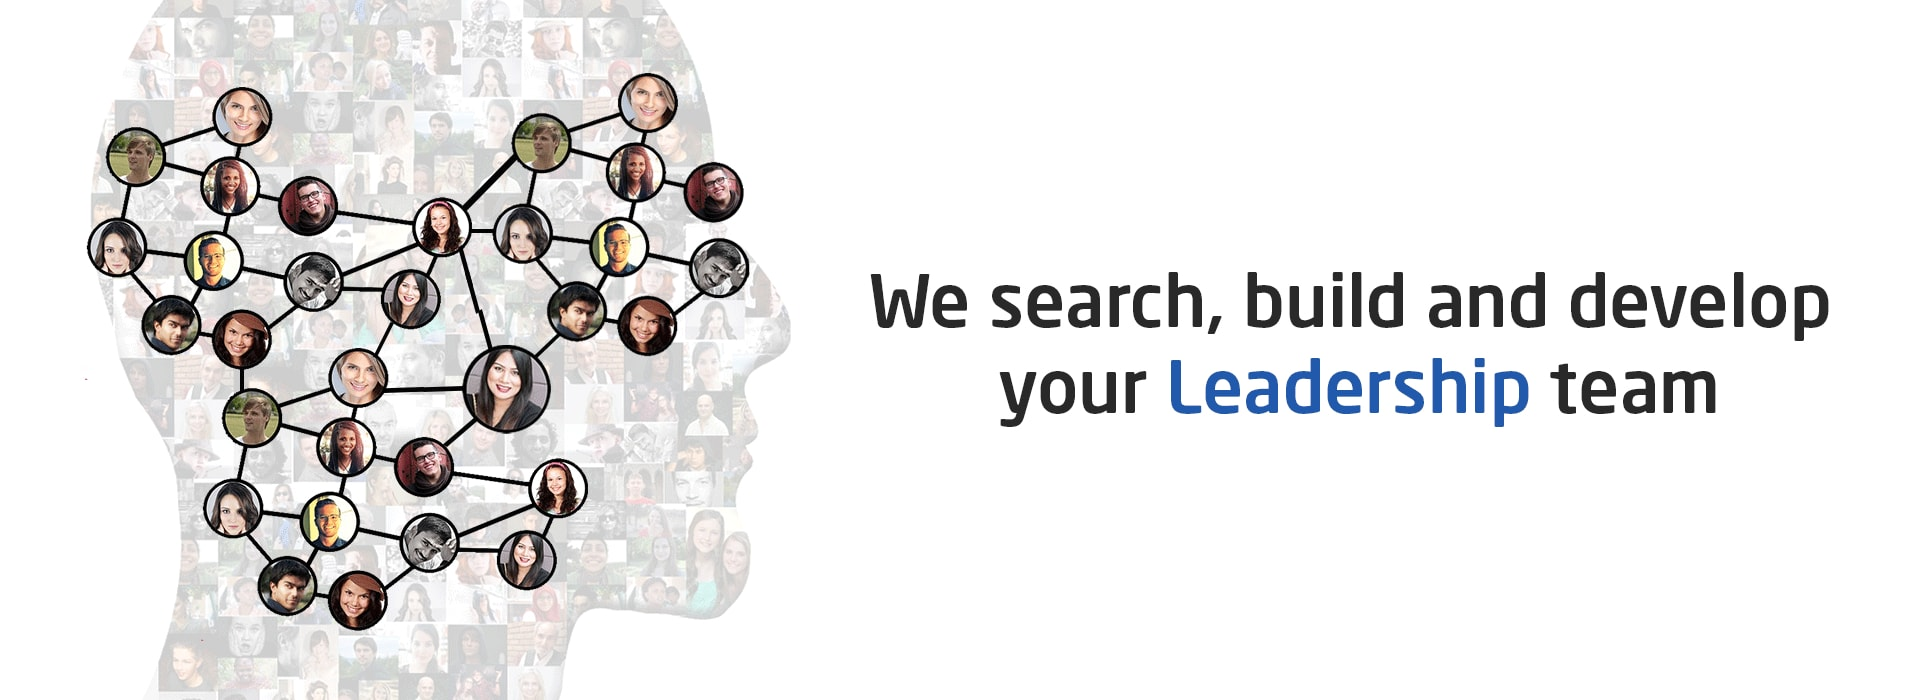 We Develop your Leadership Team